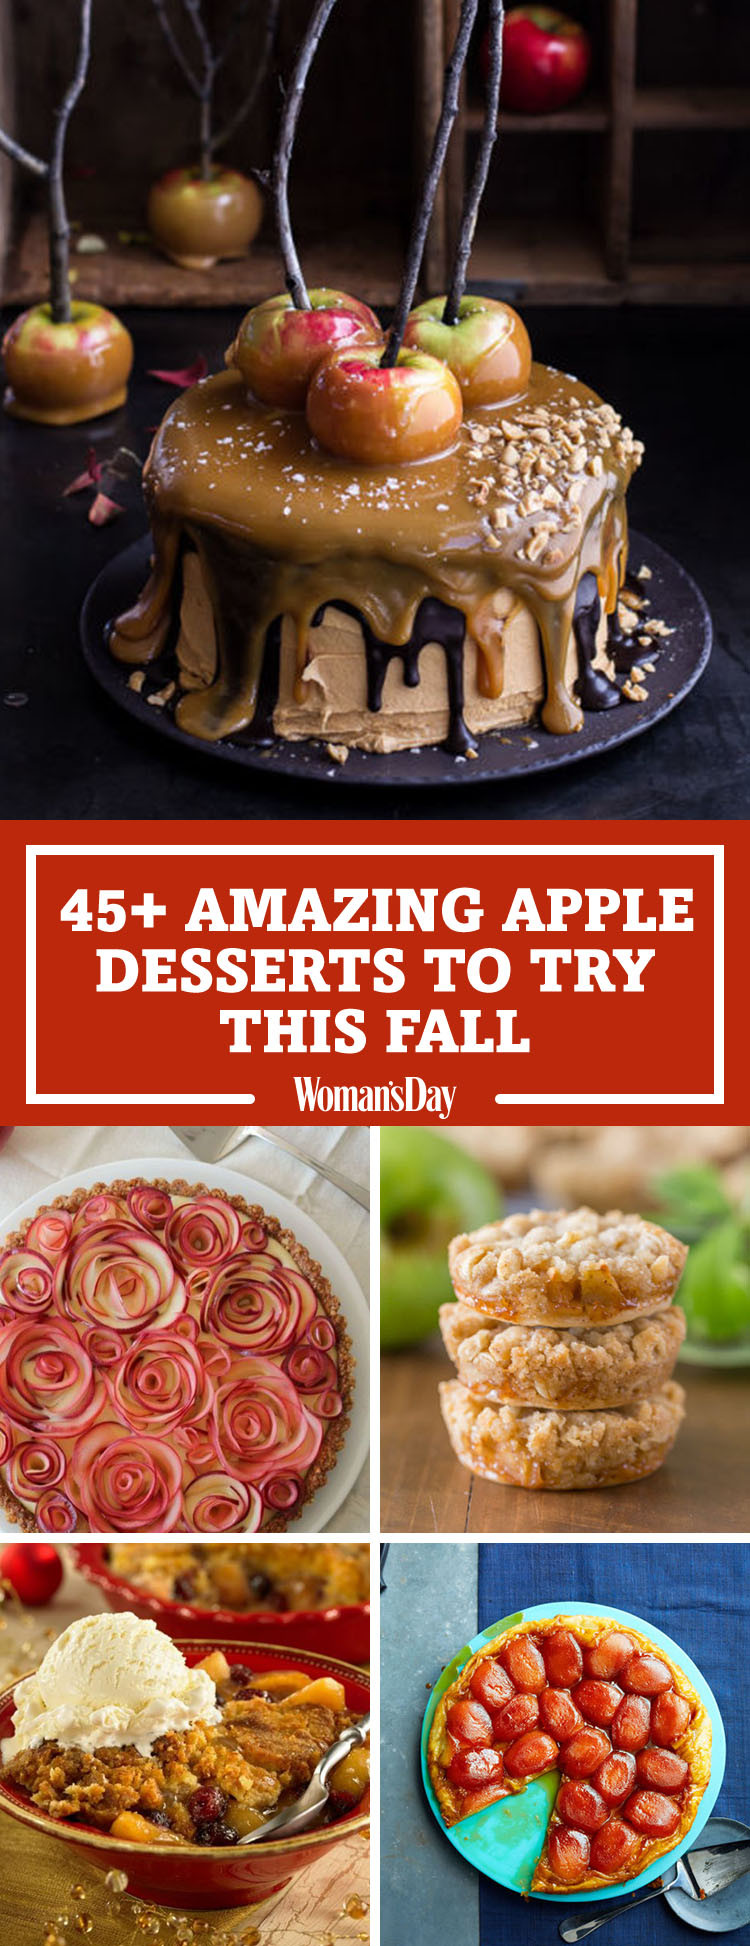 Apple Recipes For Fall  50 Easy Apple Desserts for Fall Best Recipes for Apple